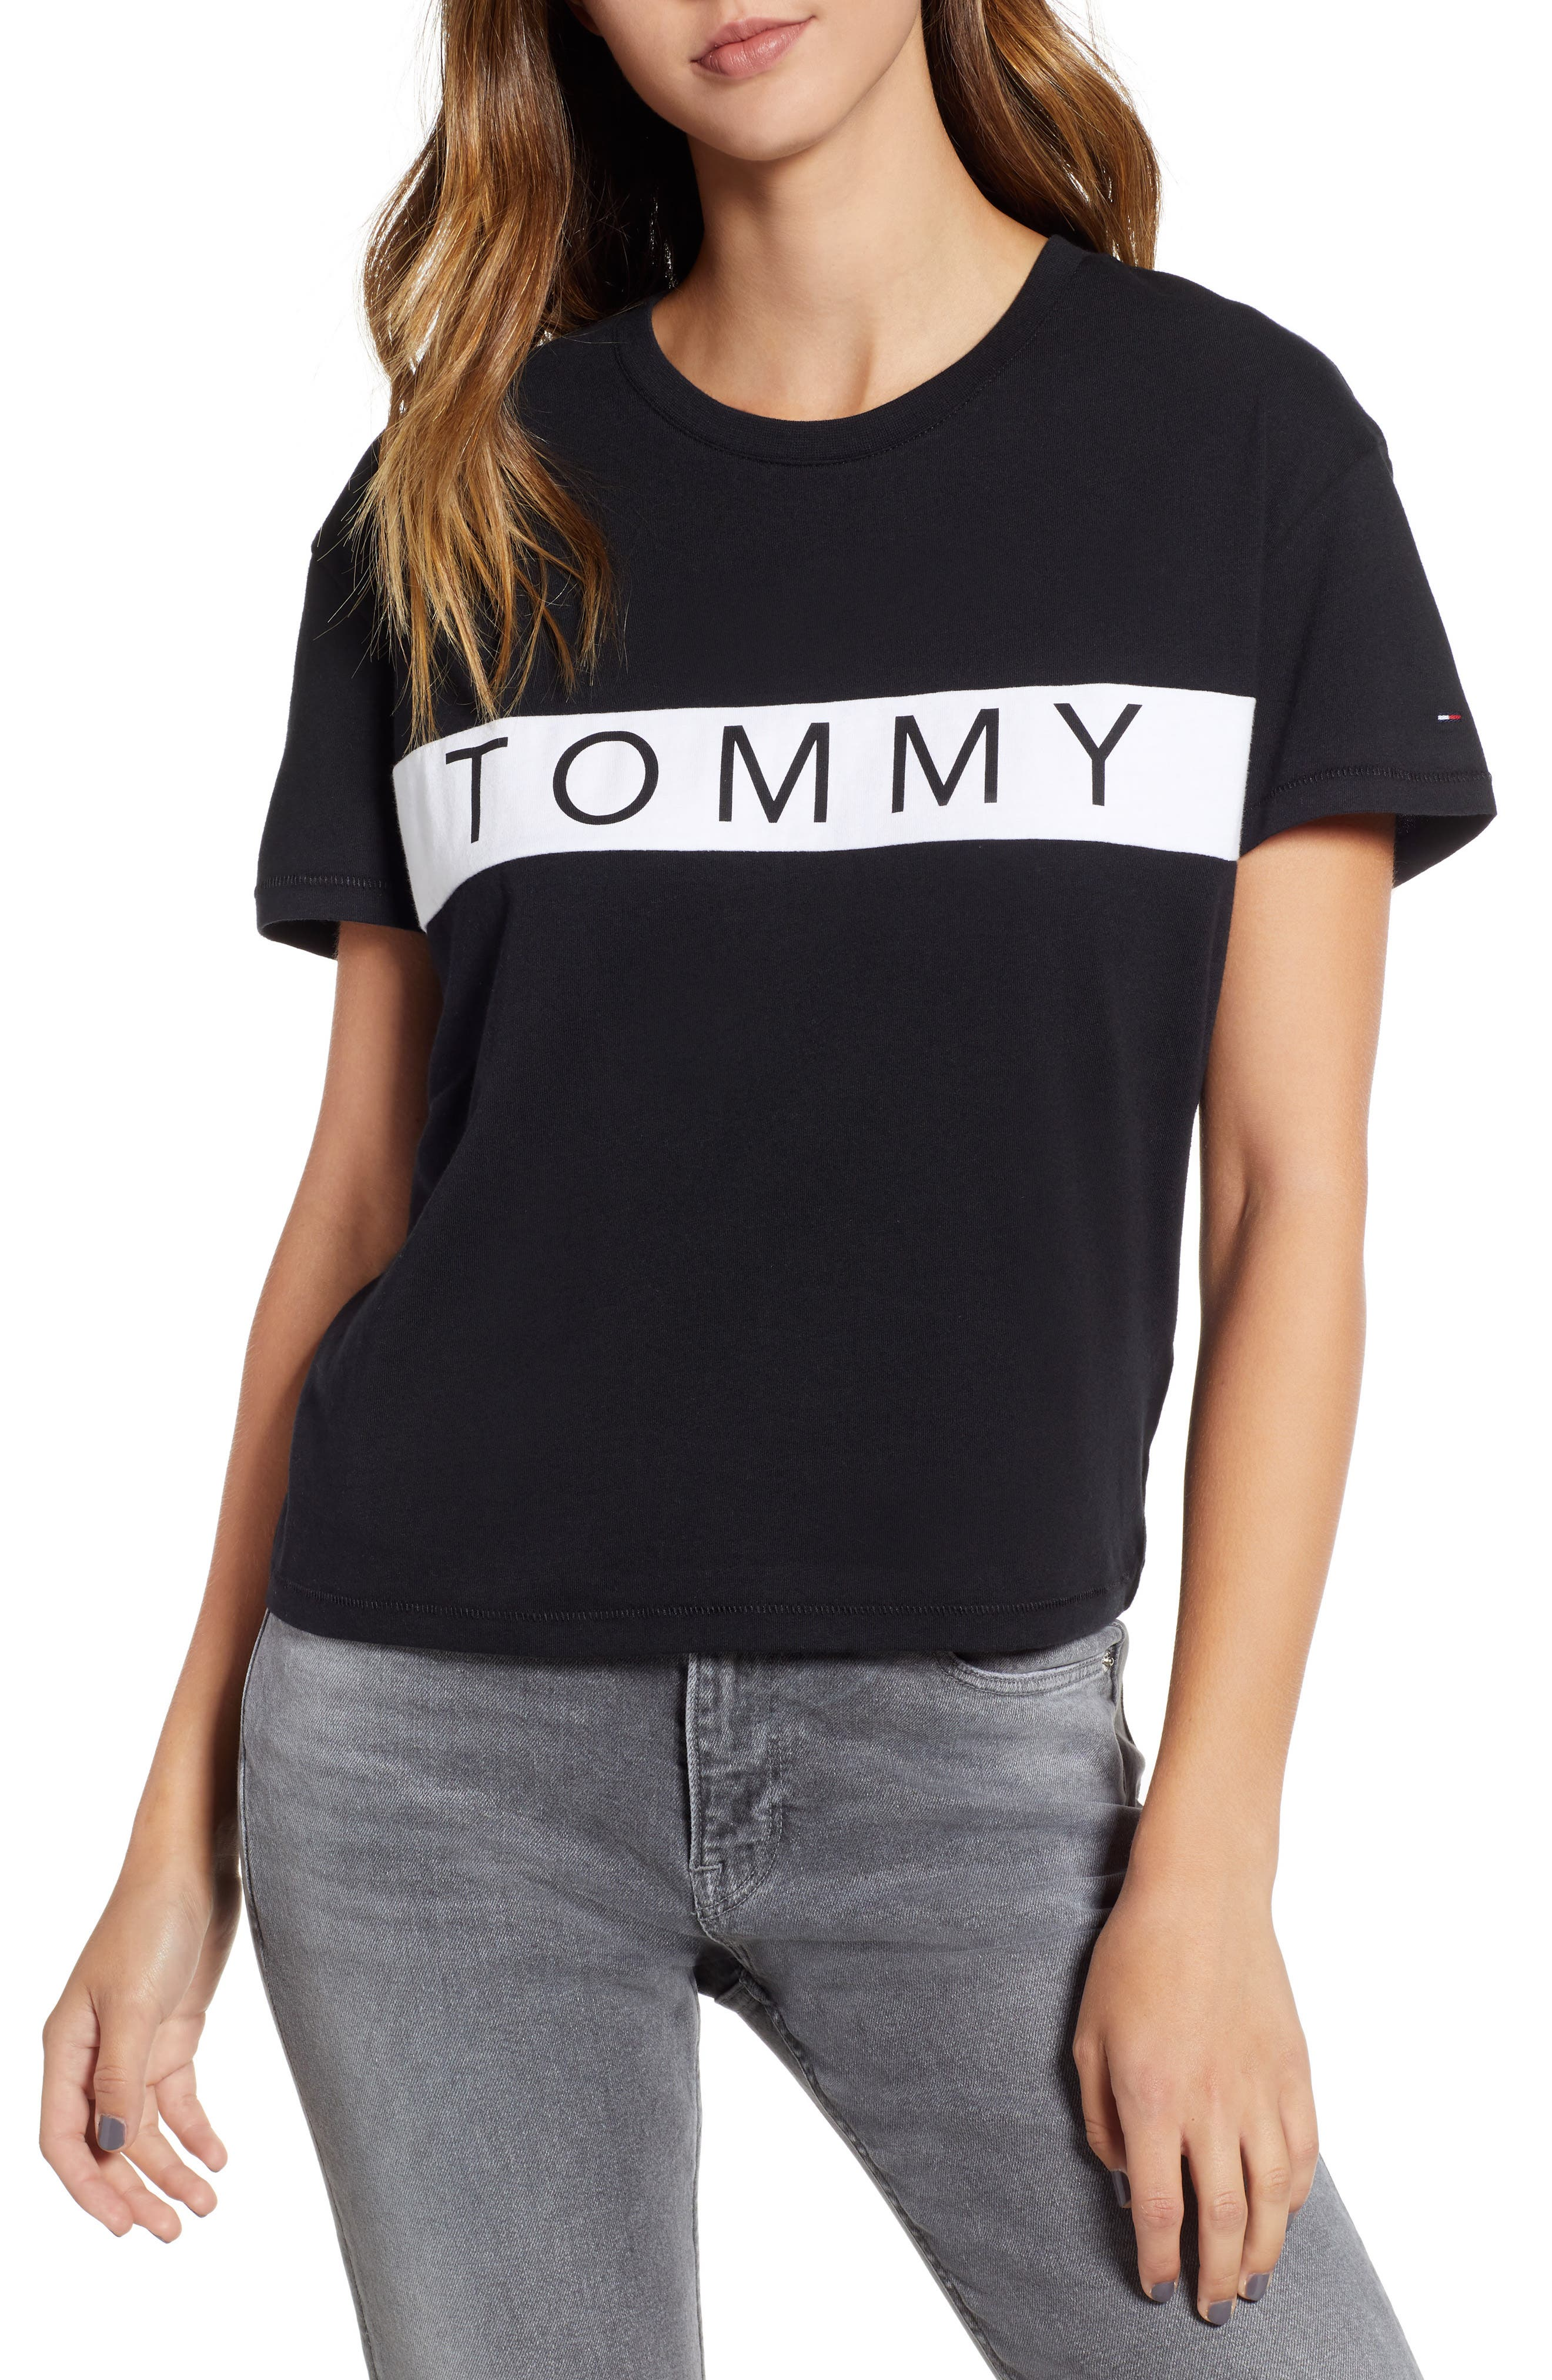 TOMMY JEANS TOMMY BOLD LOGO TEE